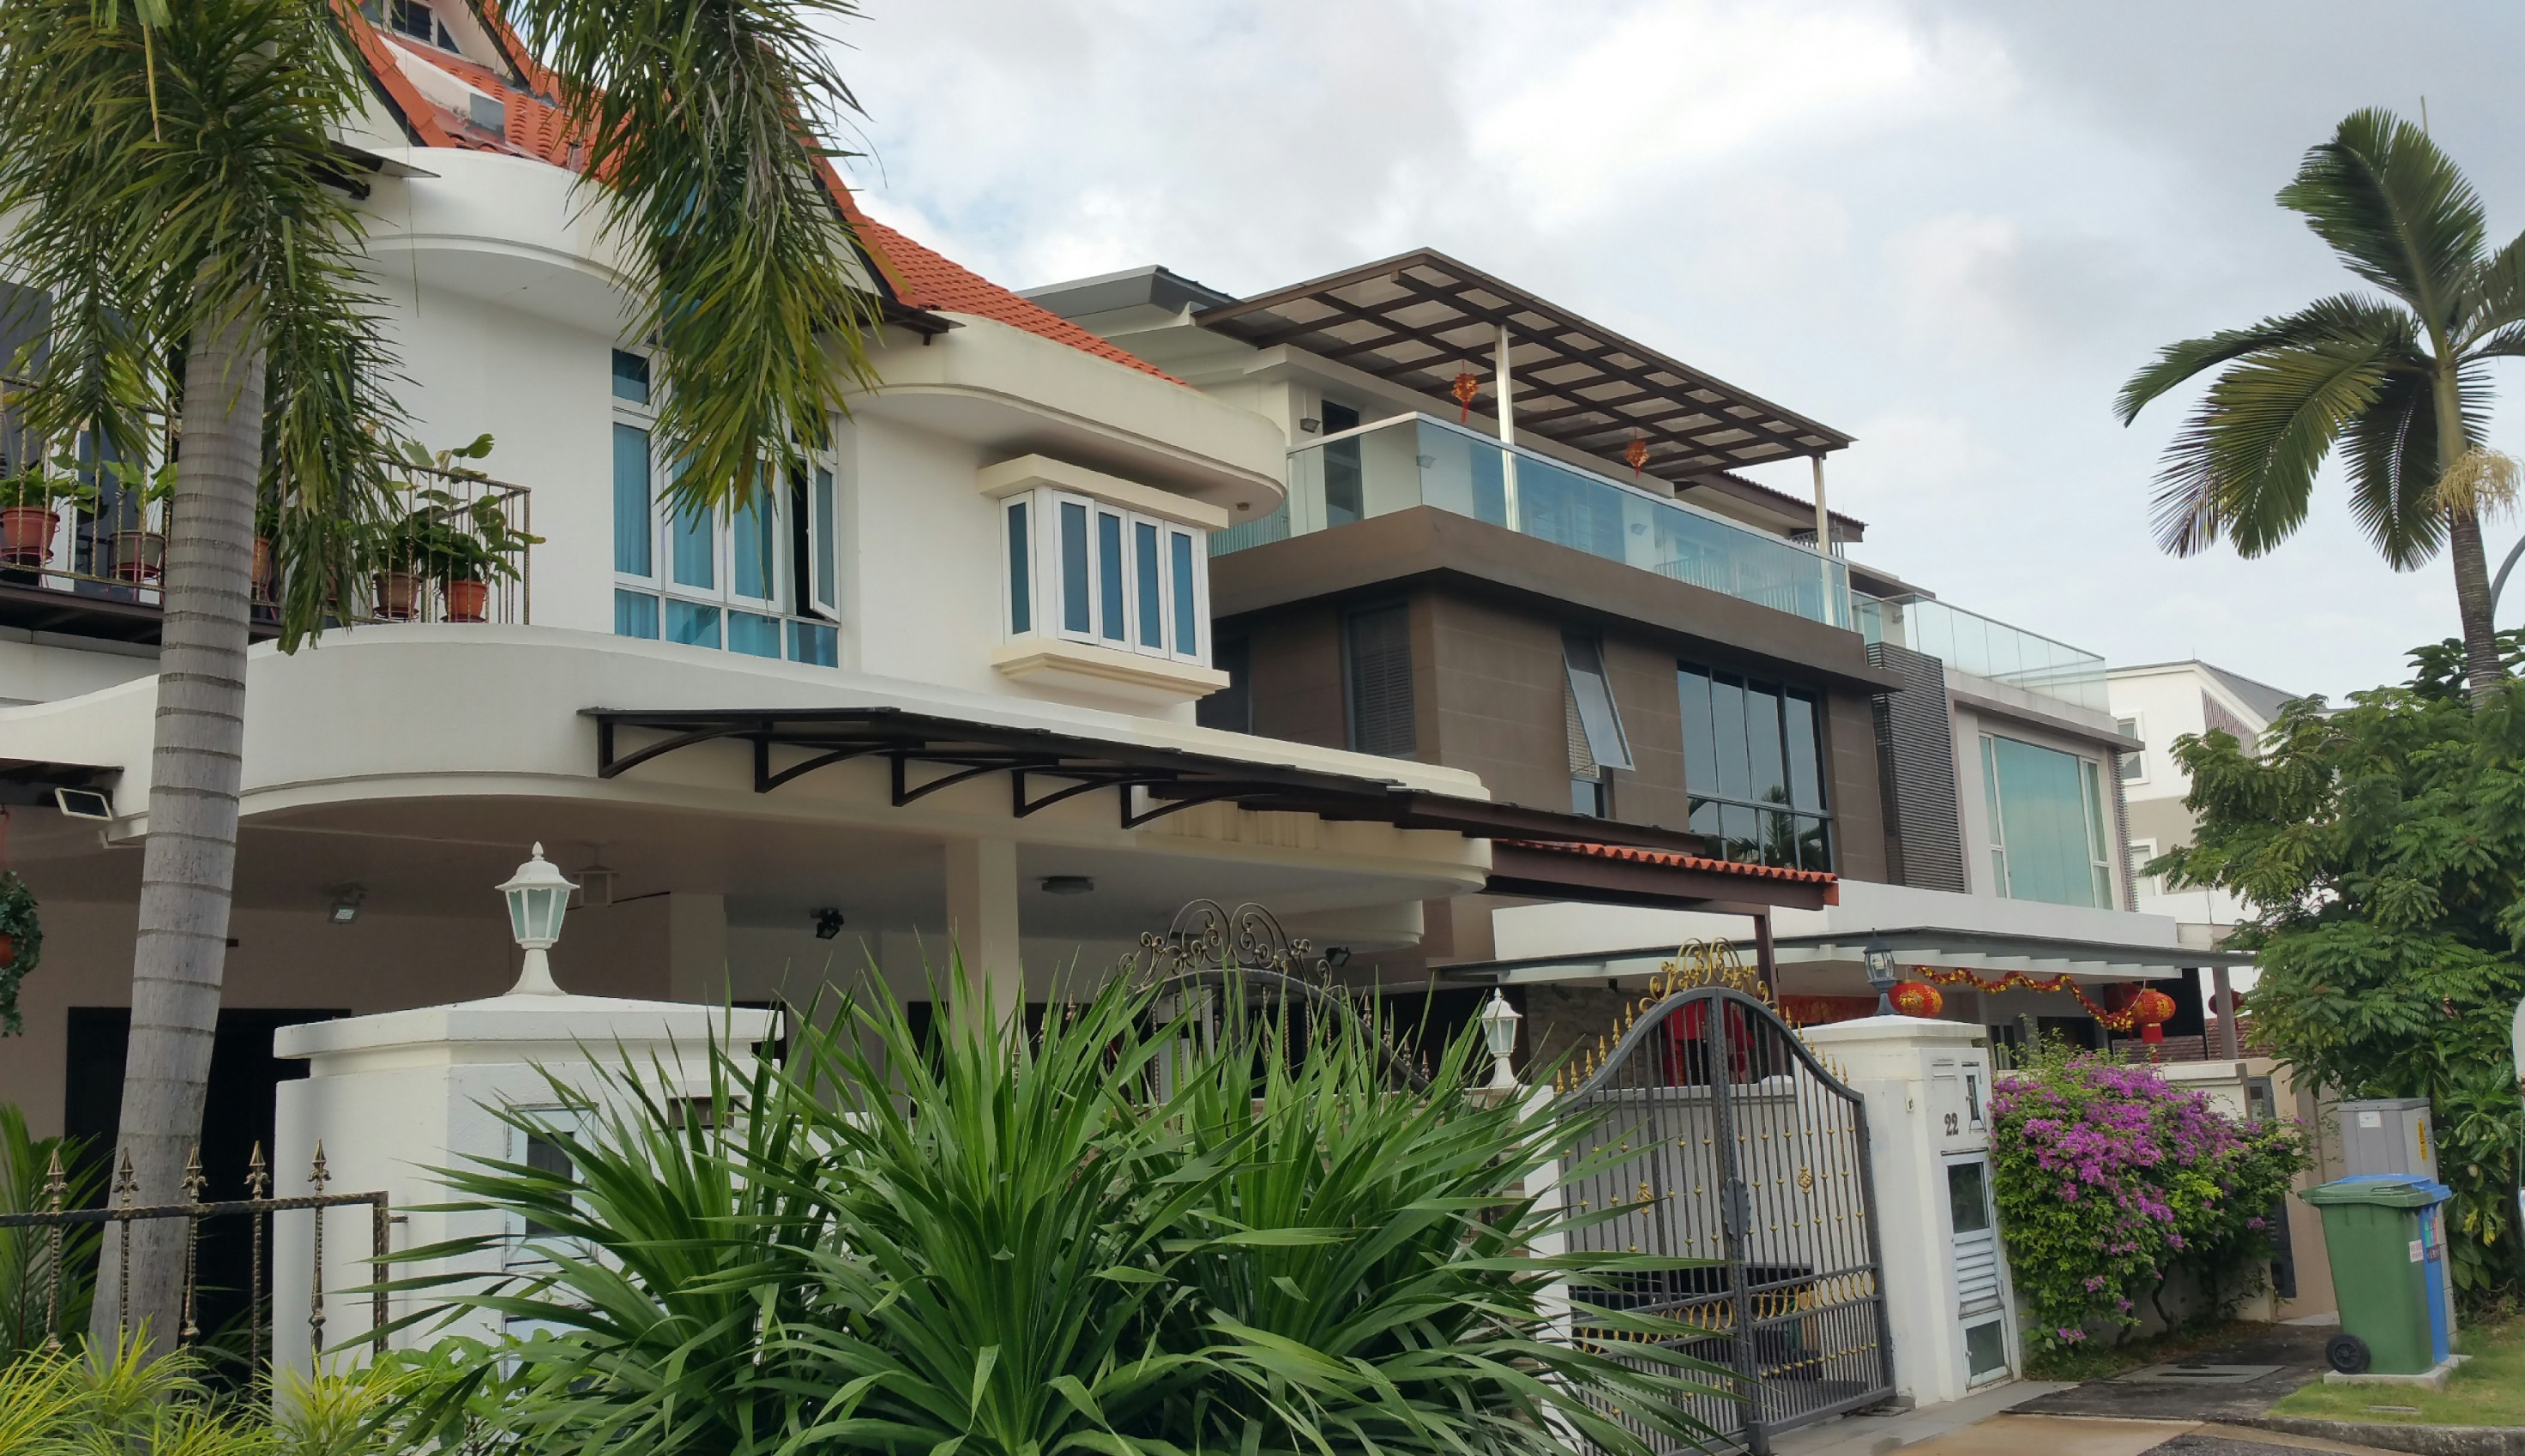 Terrace house renovation wuxing construction pte ltd for Terrace house singapore